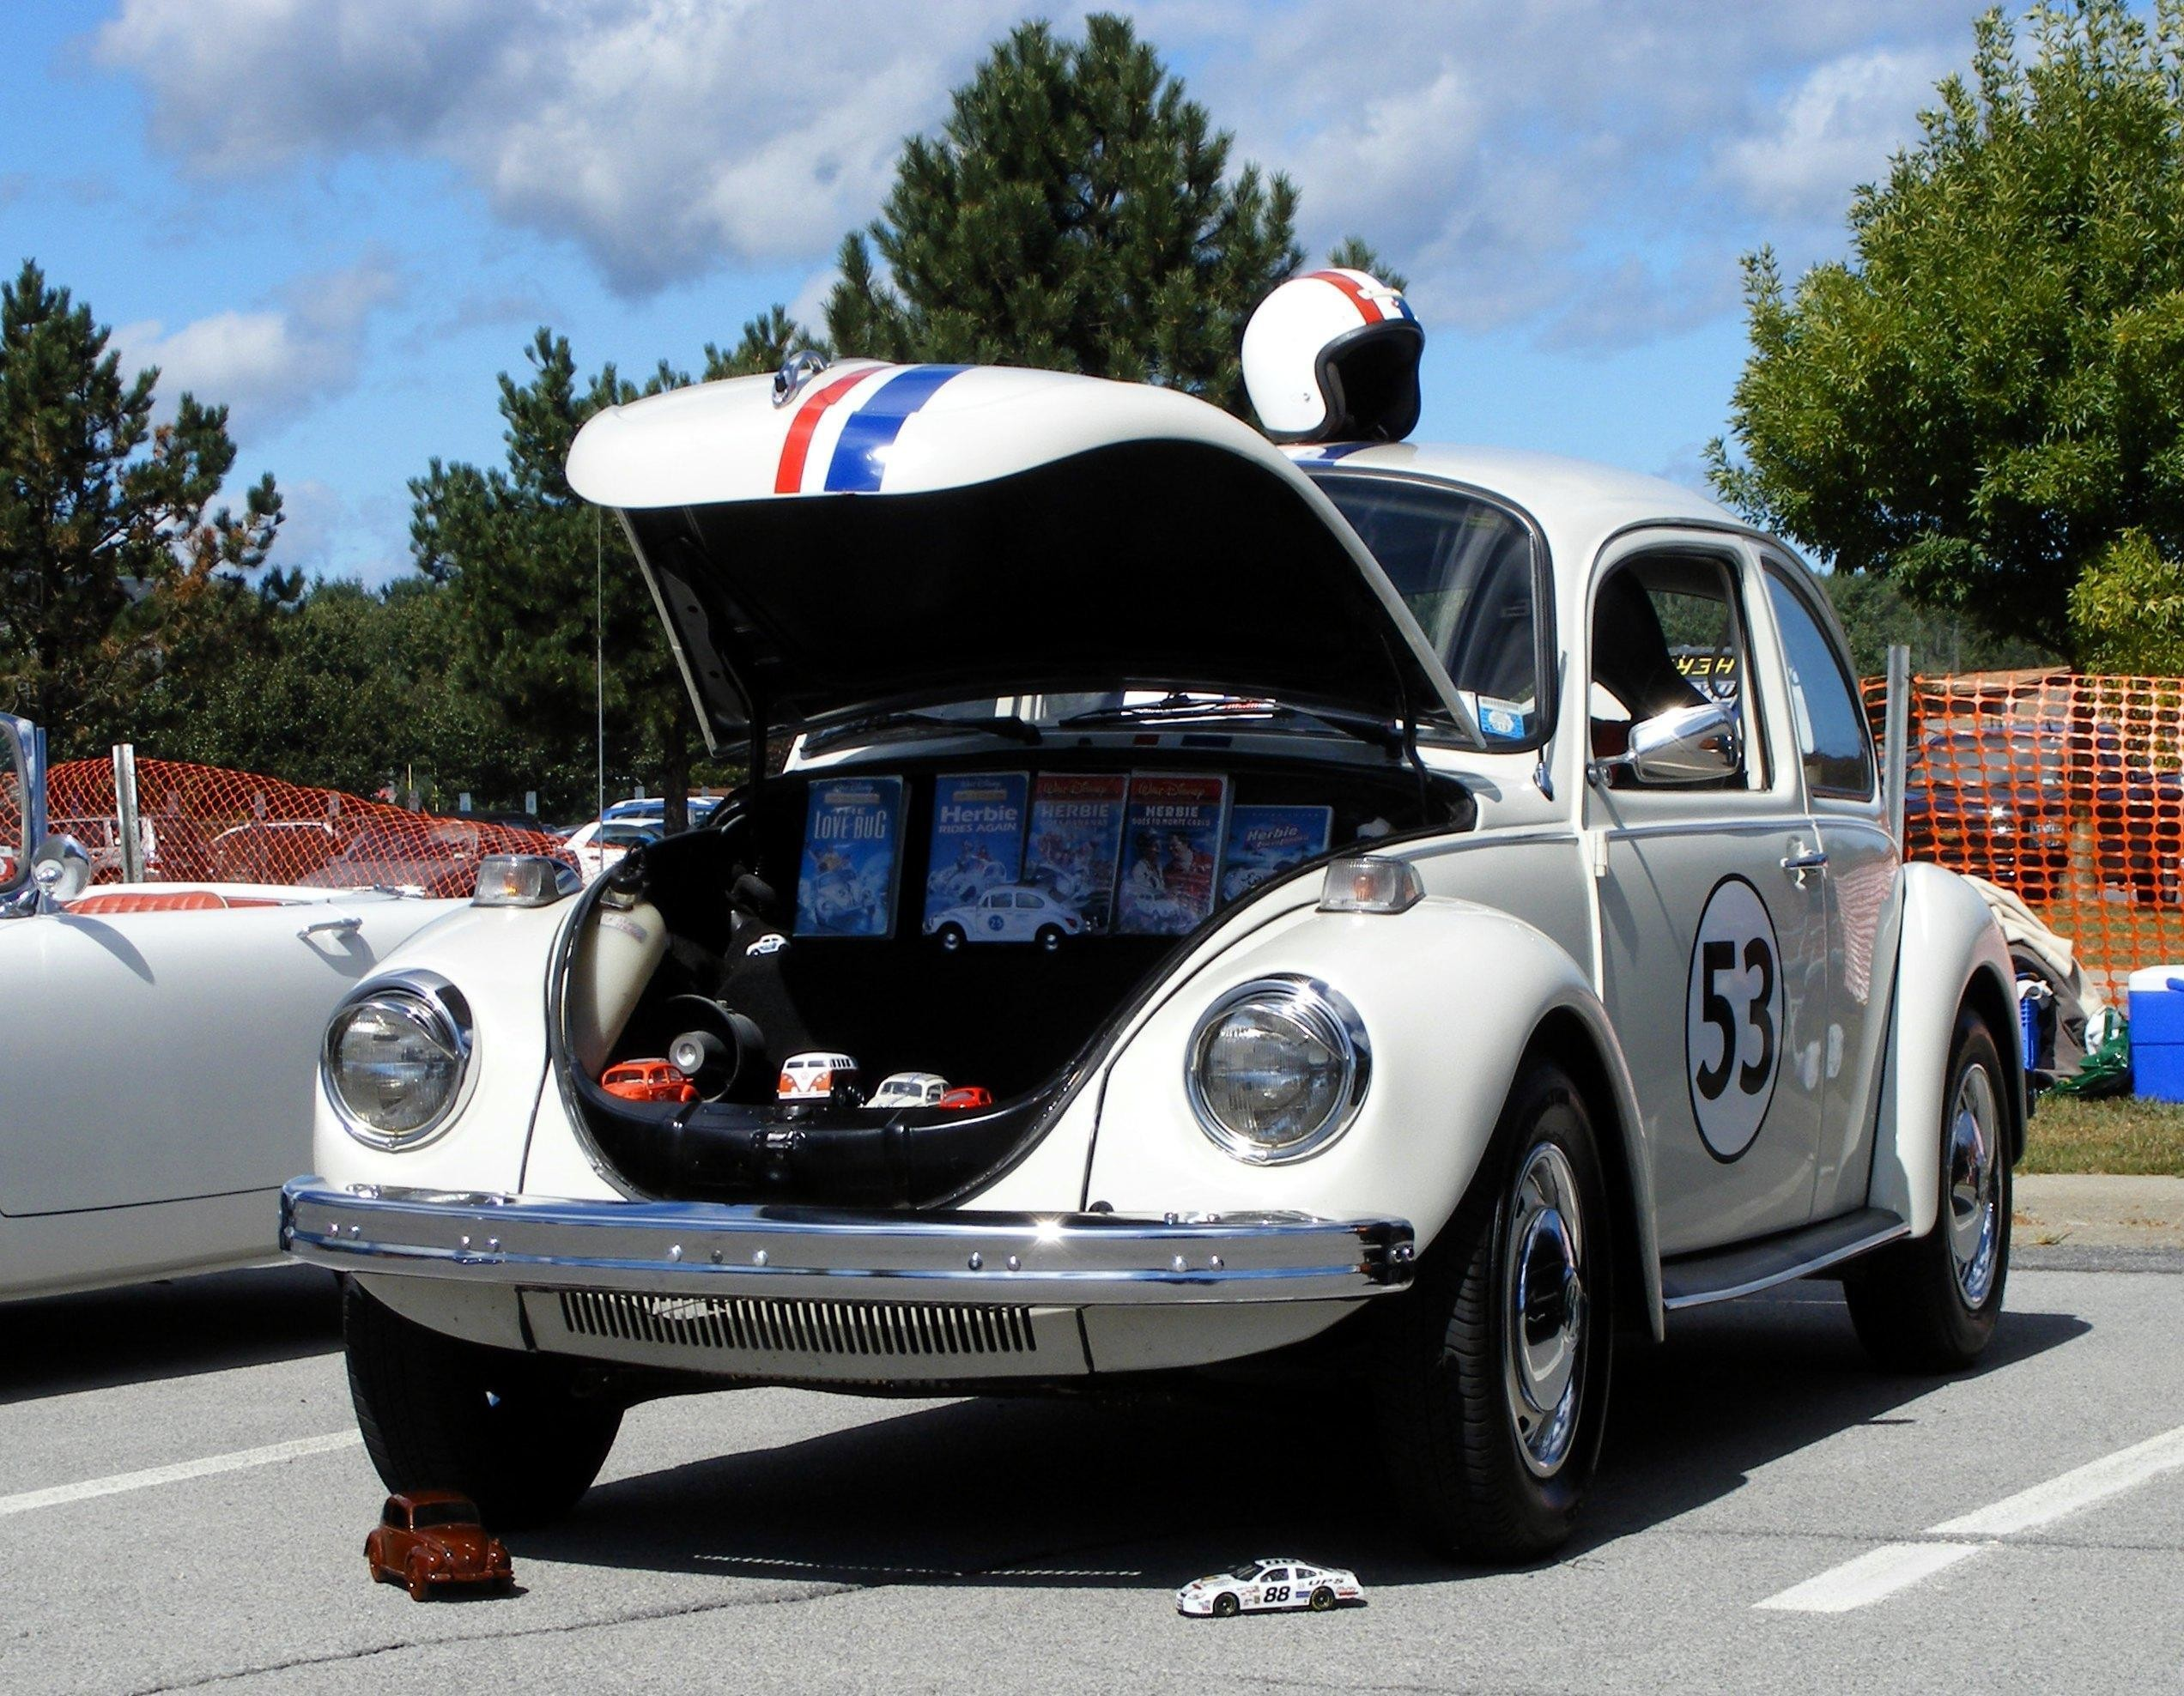 Res: 2544x1976, HD Herbie Wallpaper